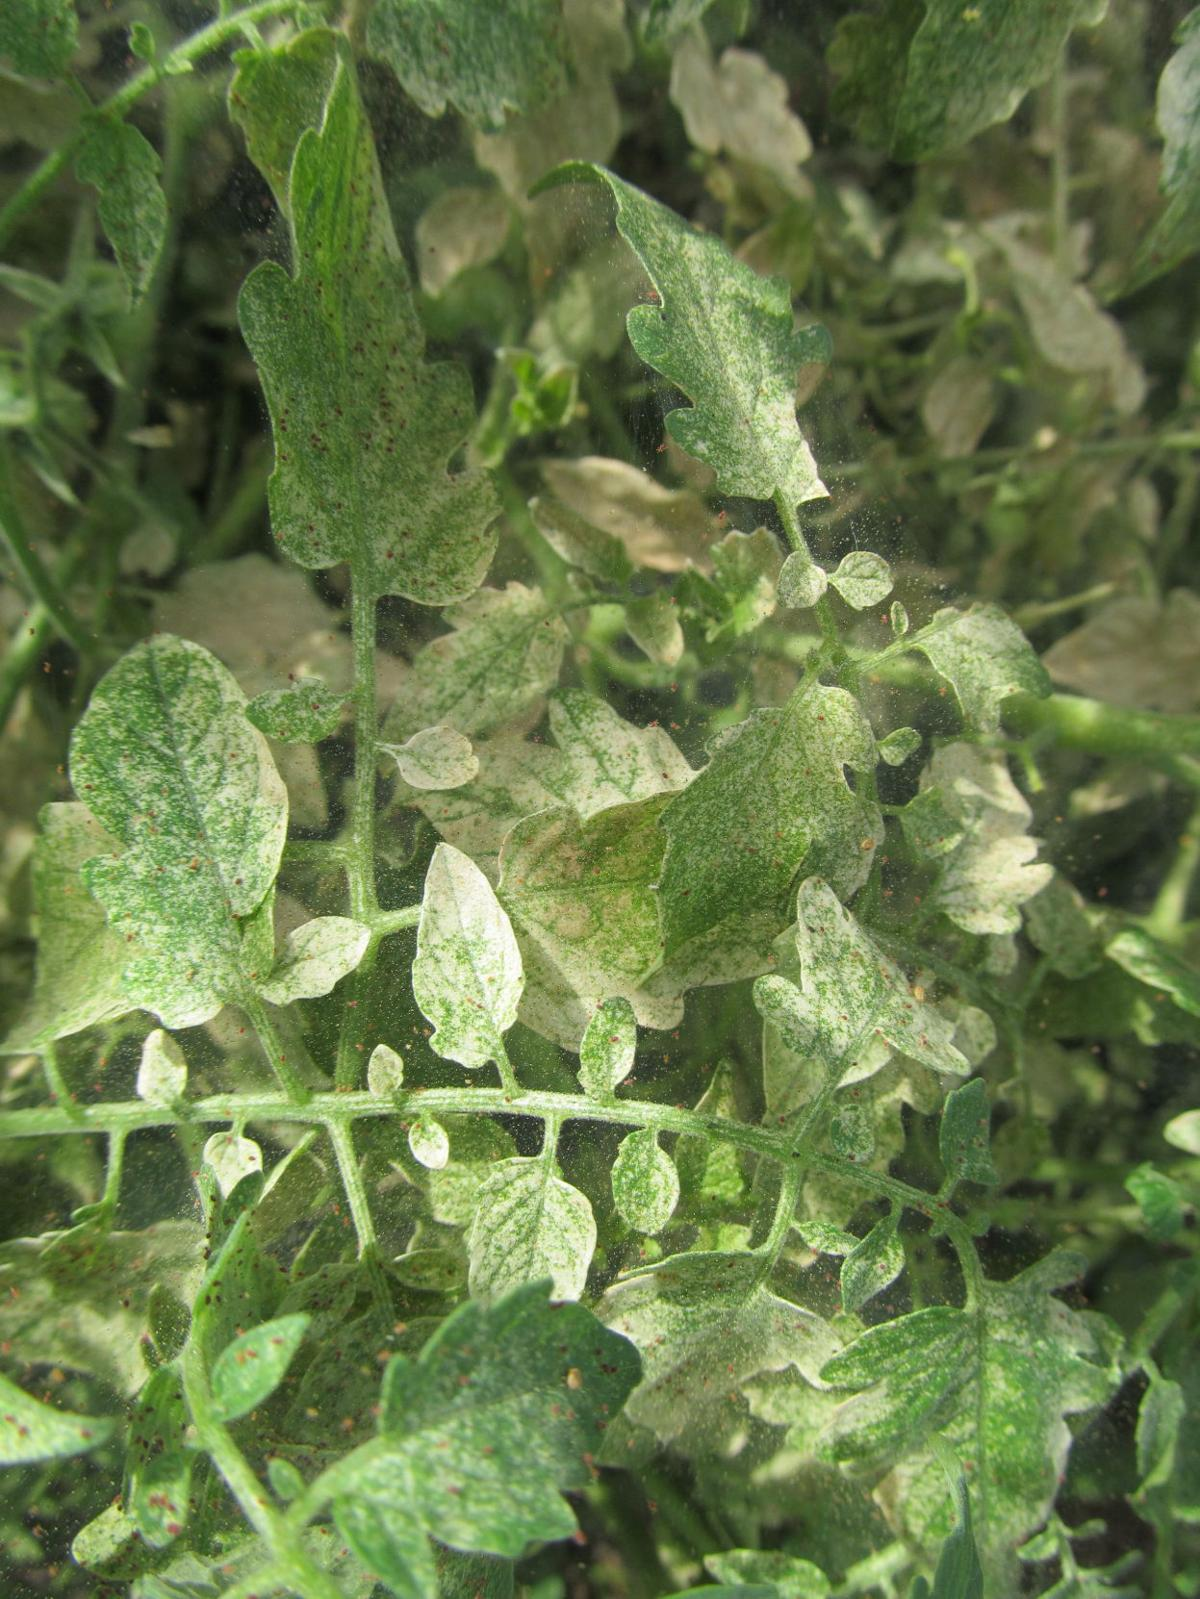 Spider Mite Damage On Tomatoes